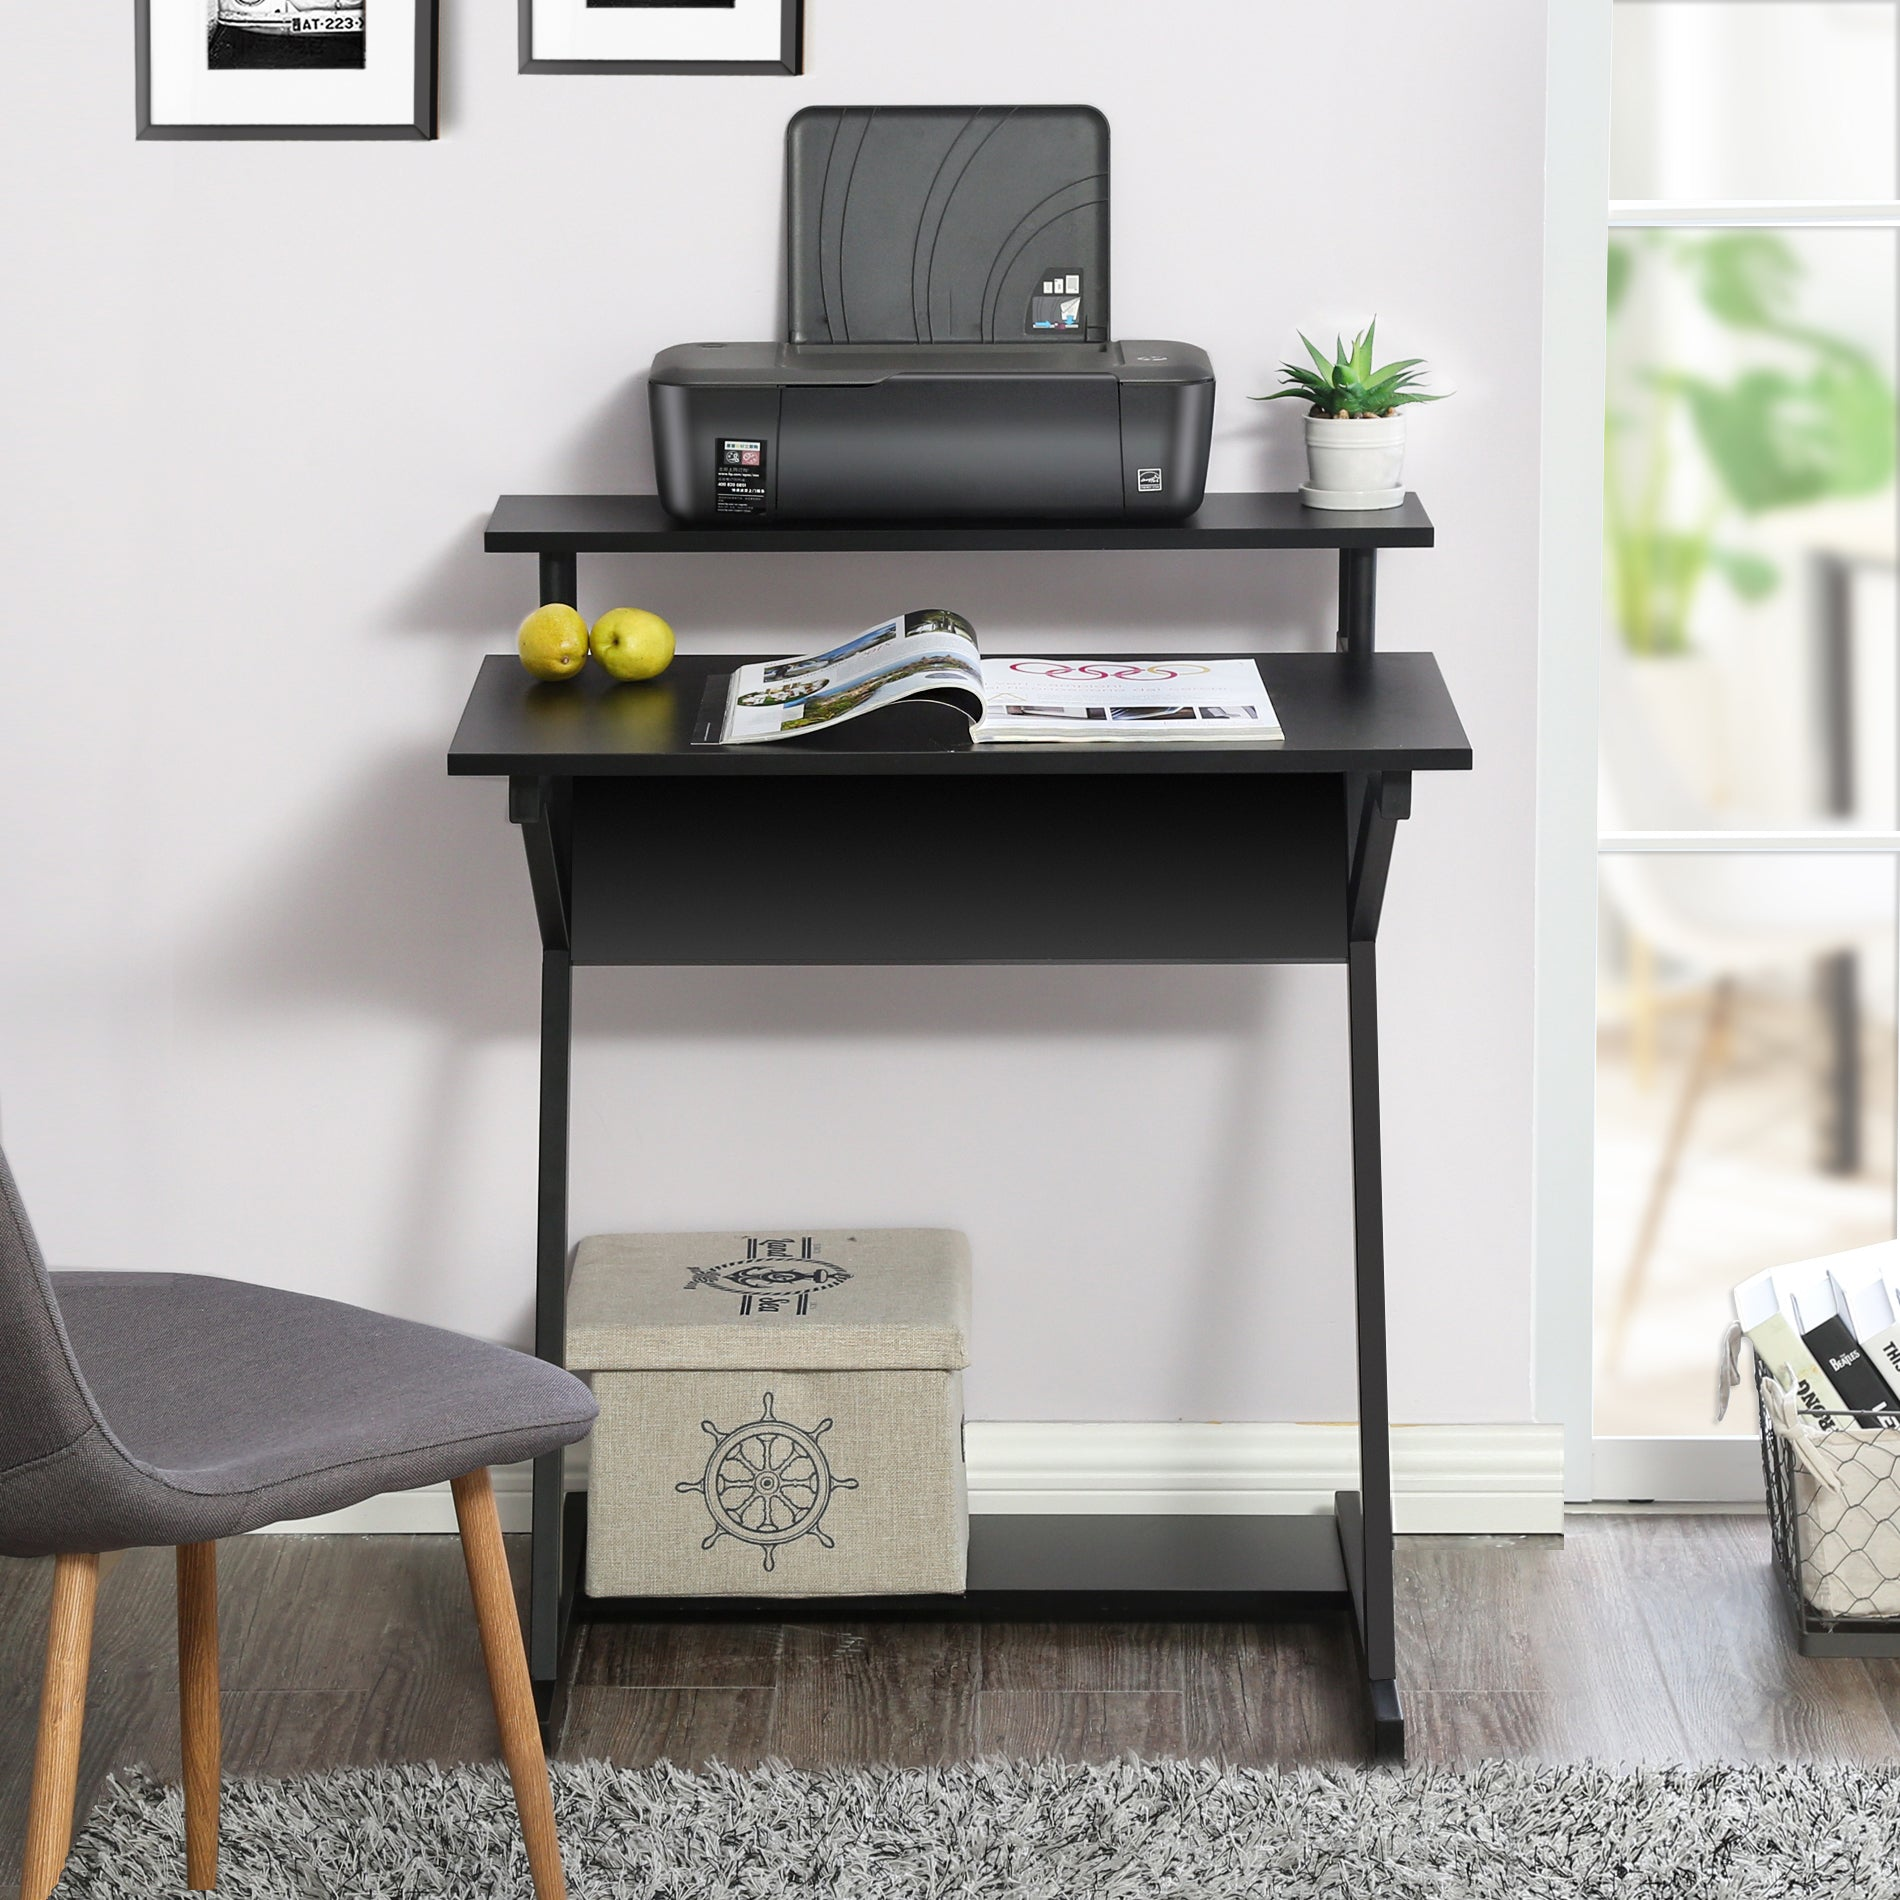 Fitueyes Small Computer Desk With Monitor & Printer Shelf,Study Writing  Desk for Small Spaces,CD307001WB